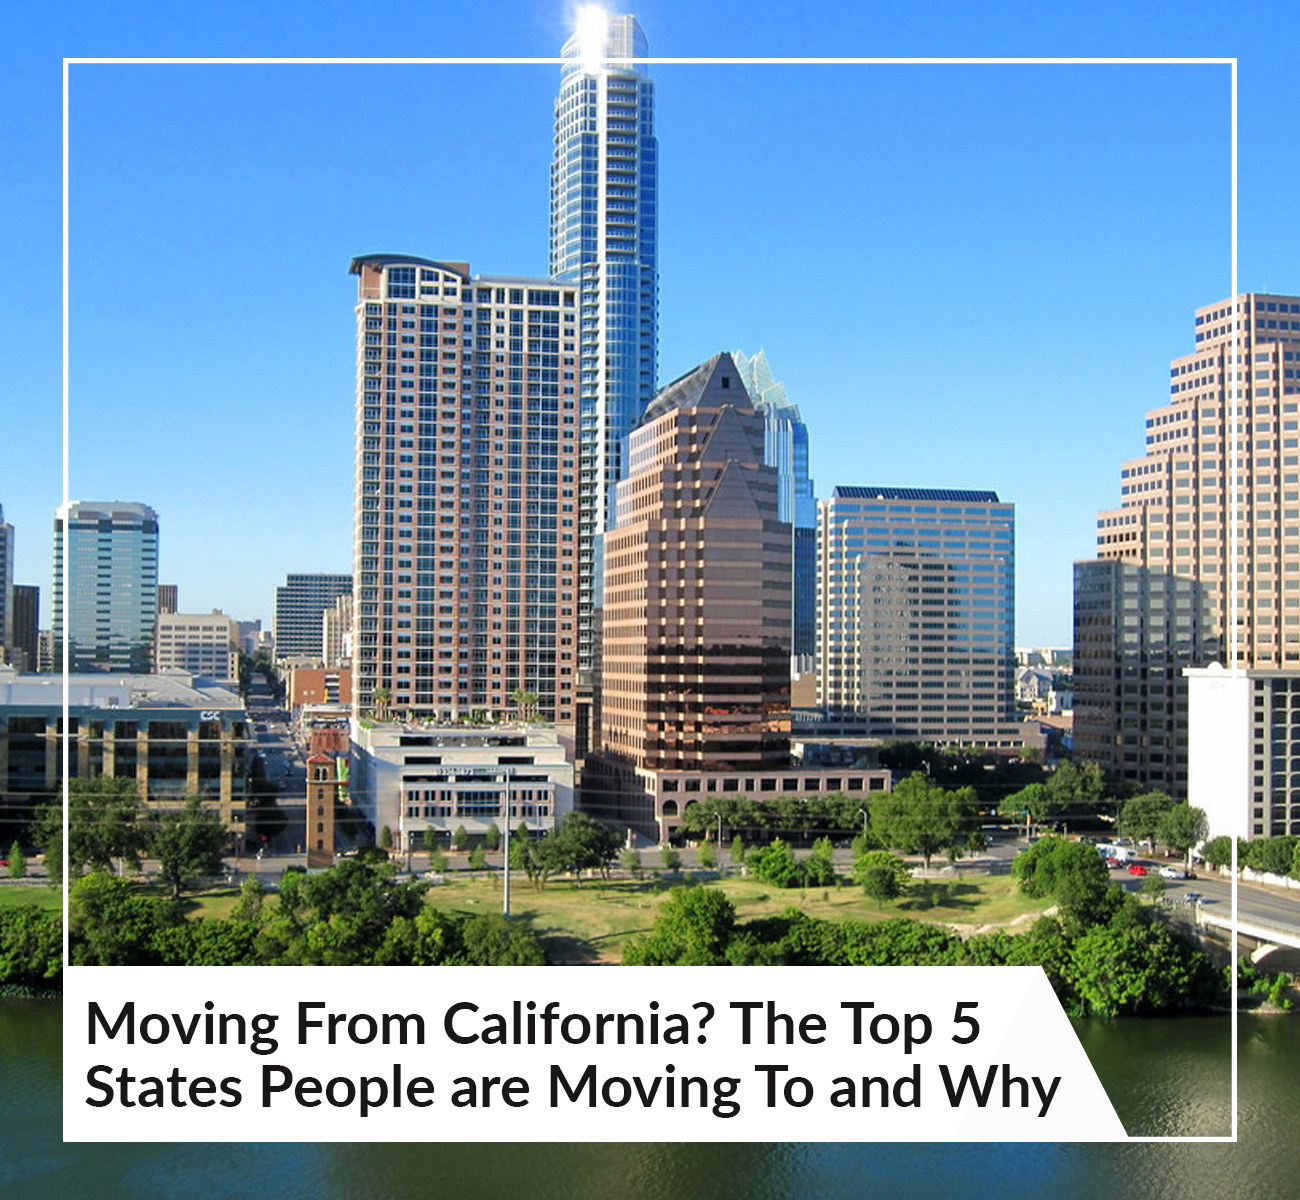 Top 5 States People Are Moving To